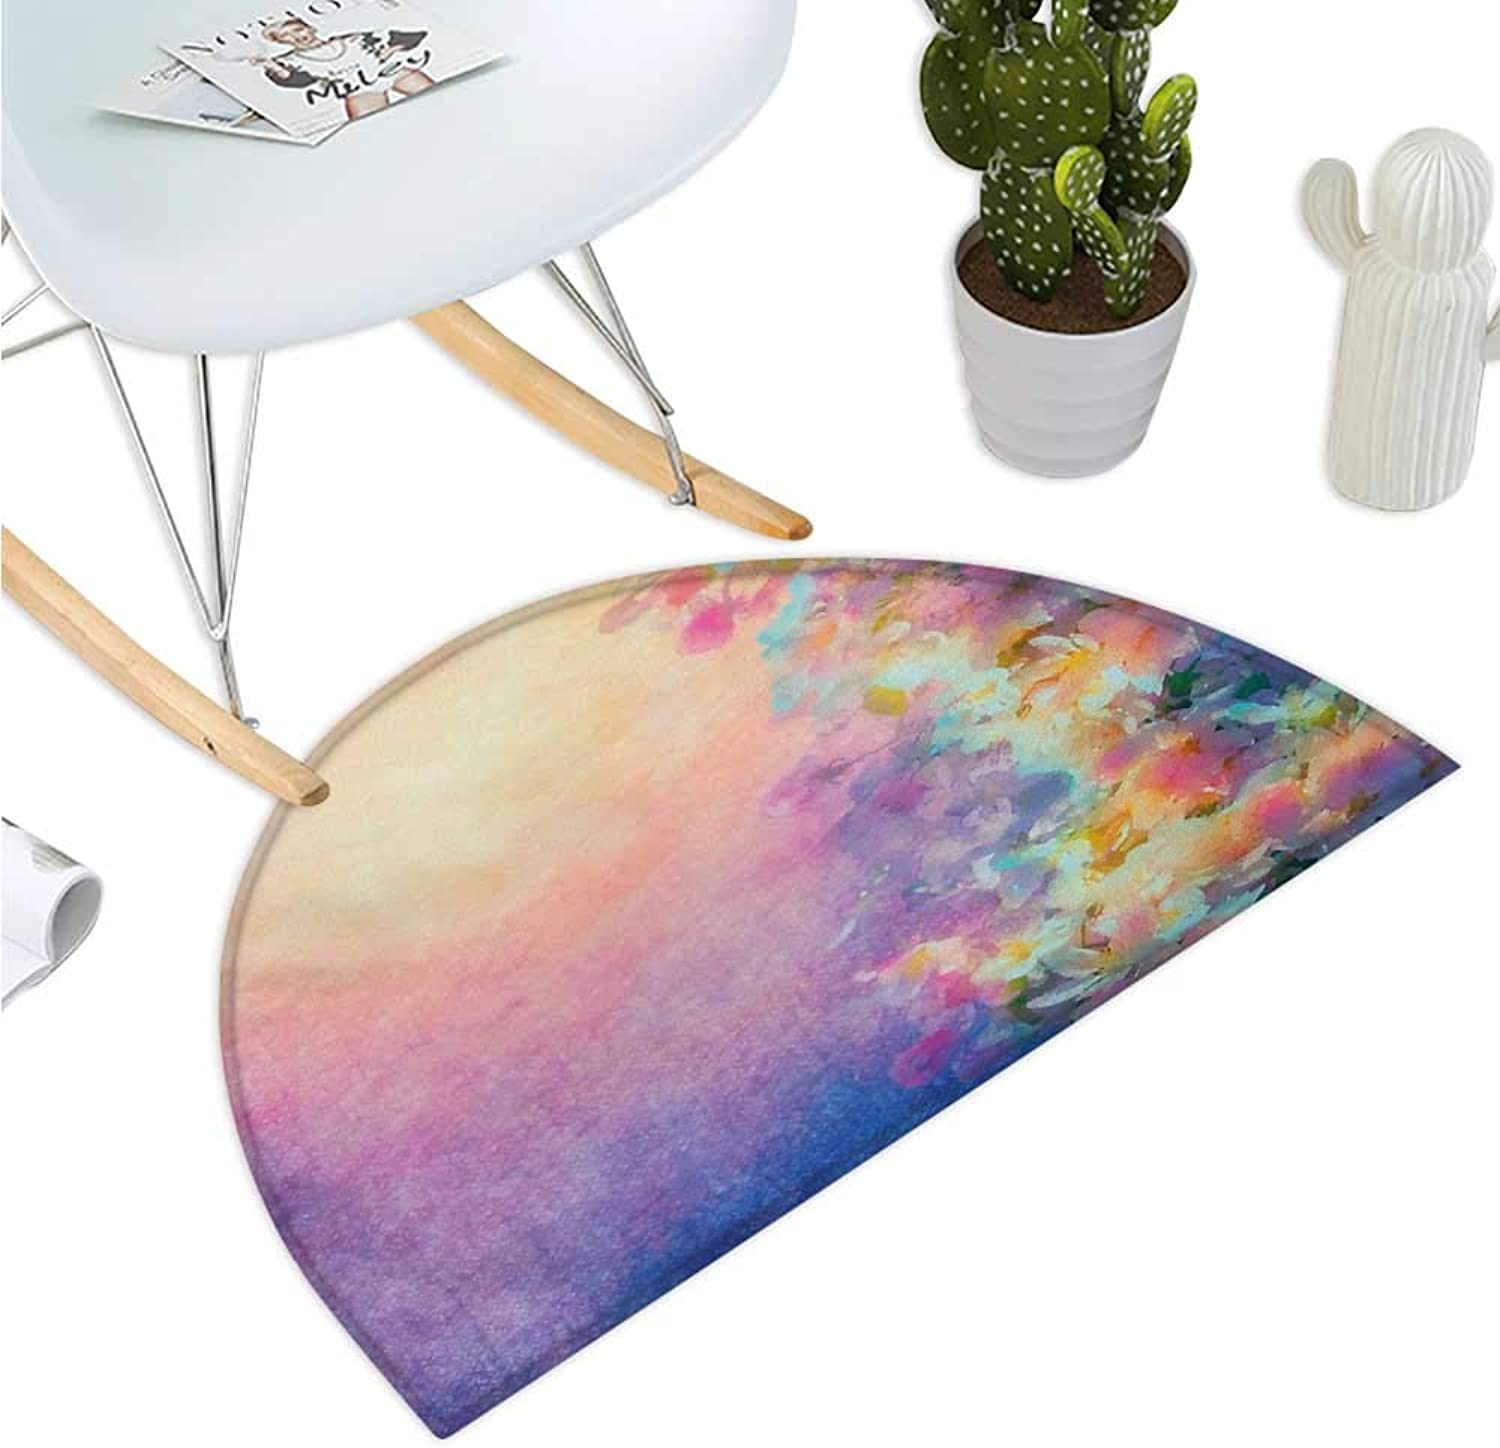 Purple Semicircular Cushion Watercolor Style Effect Spring Cherry Blossom Japanese Asian Nature Print Halfmoon doormats H 43.3  xD 64.9  Marigold and Purple